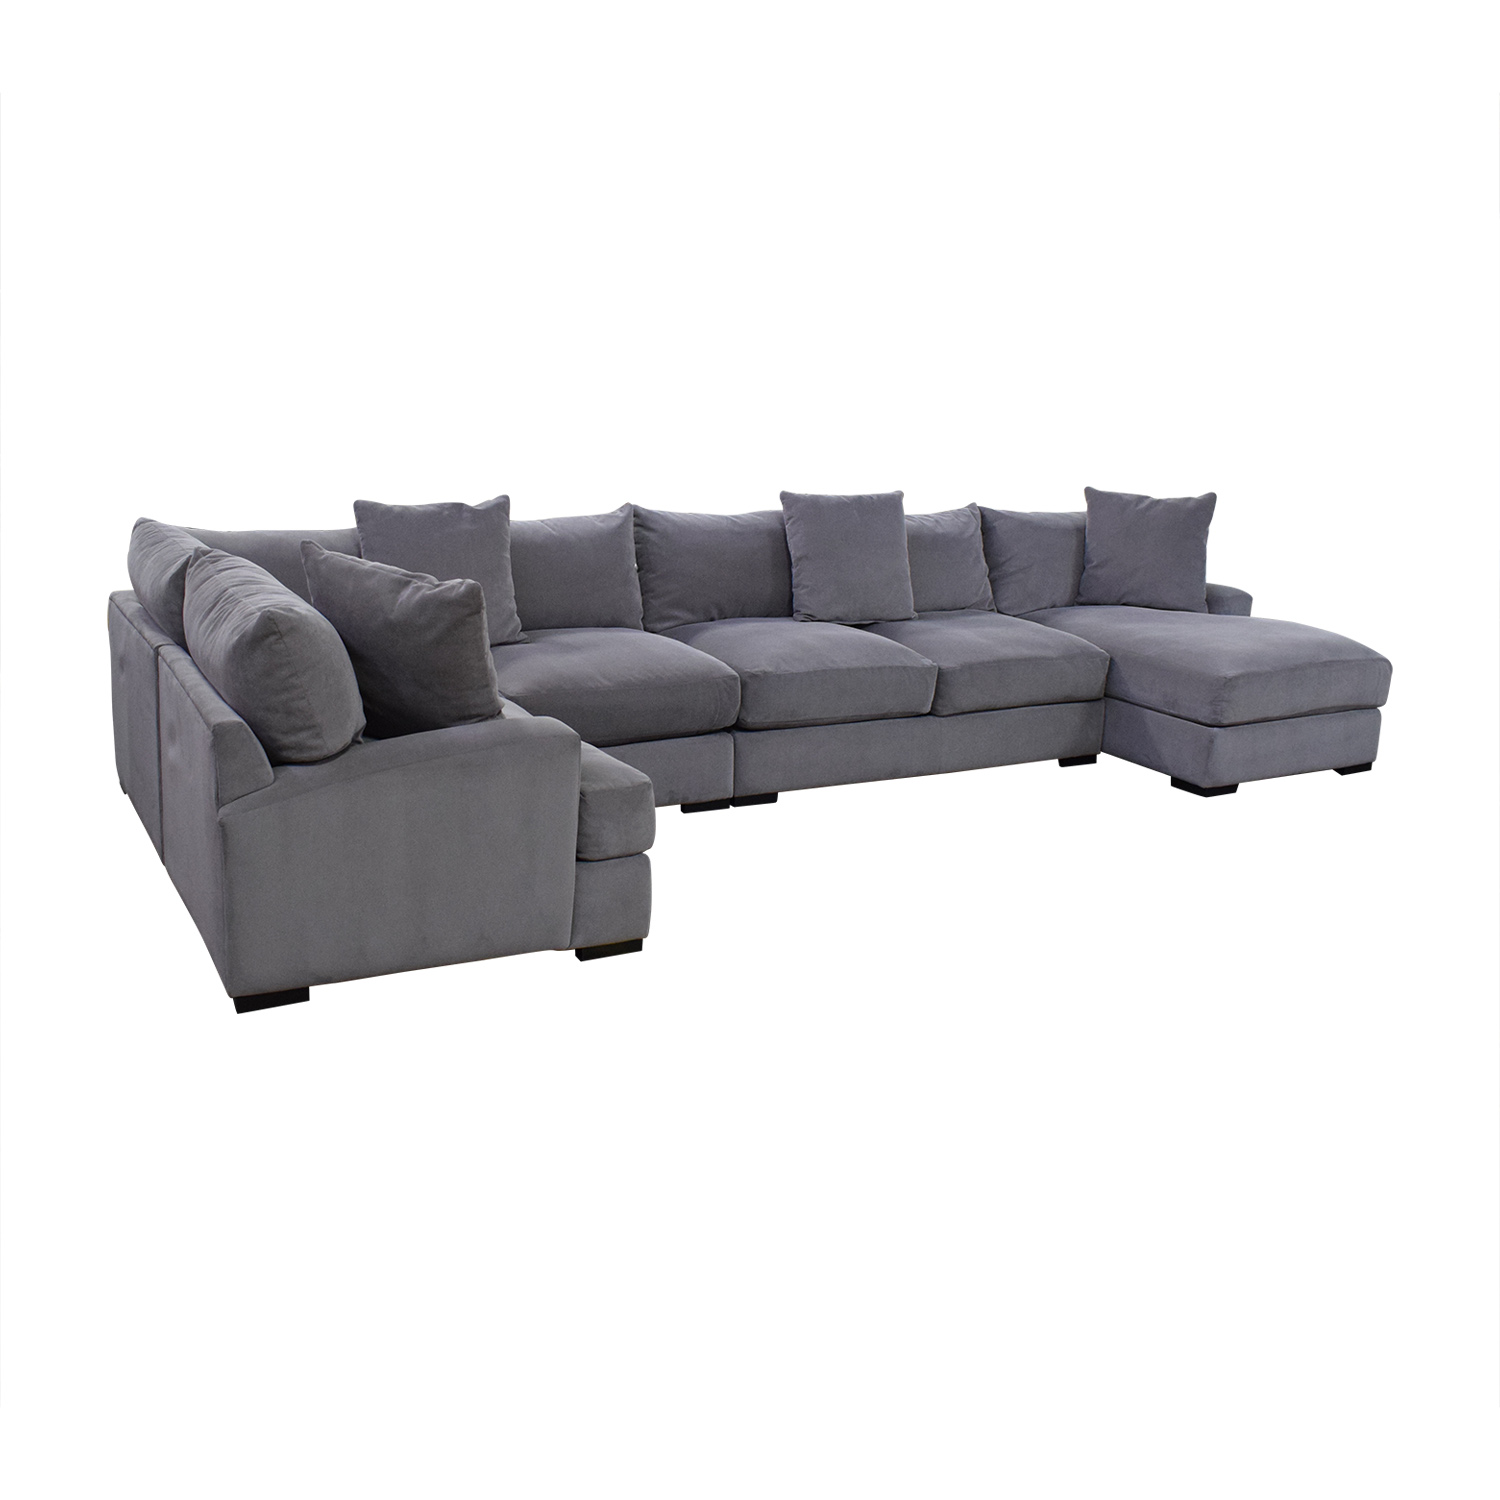 Macy's Rhyder 5 Piece Fabric Sectional Sofa with Chaise Sofas